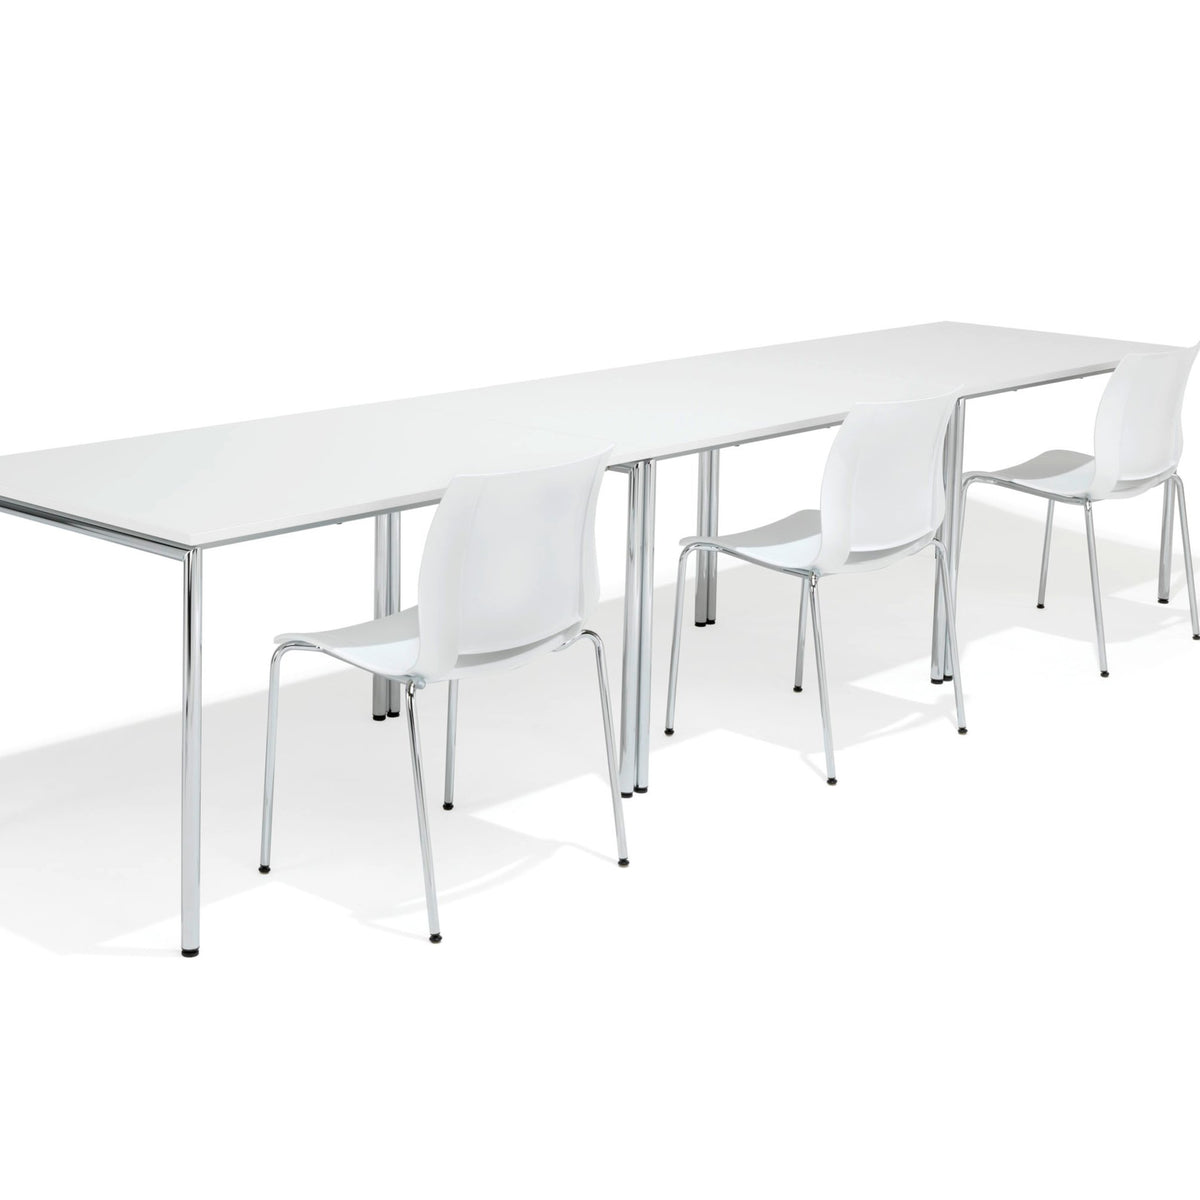 Kusch+Co Office White Scorpii Meeting Table